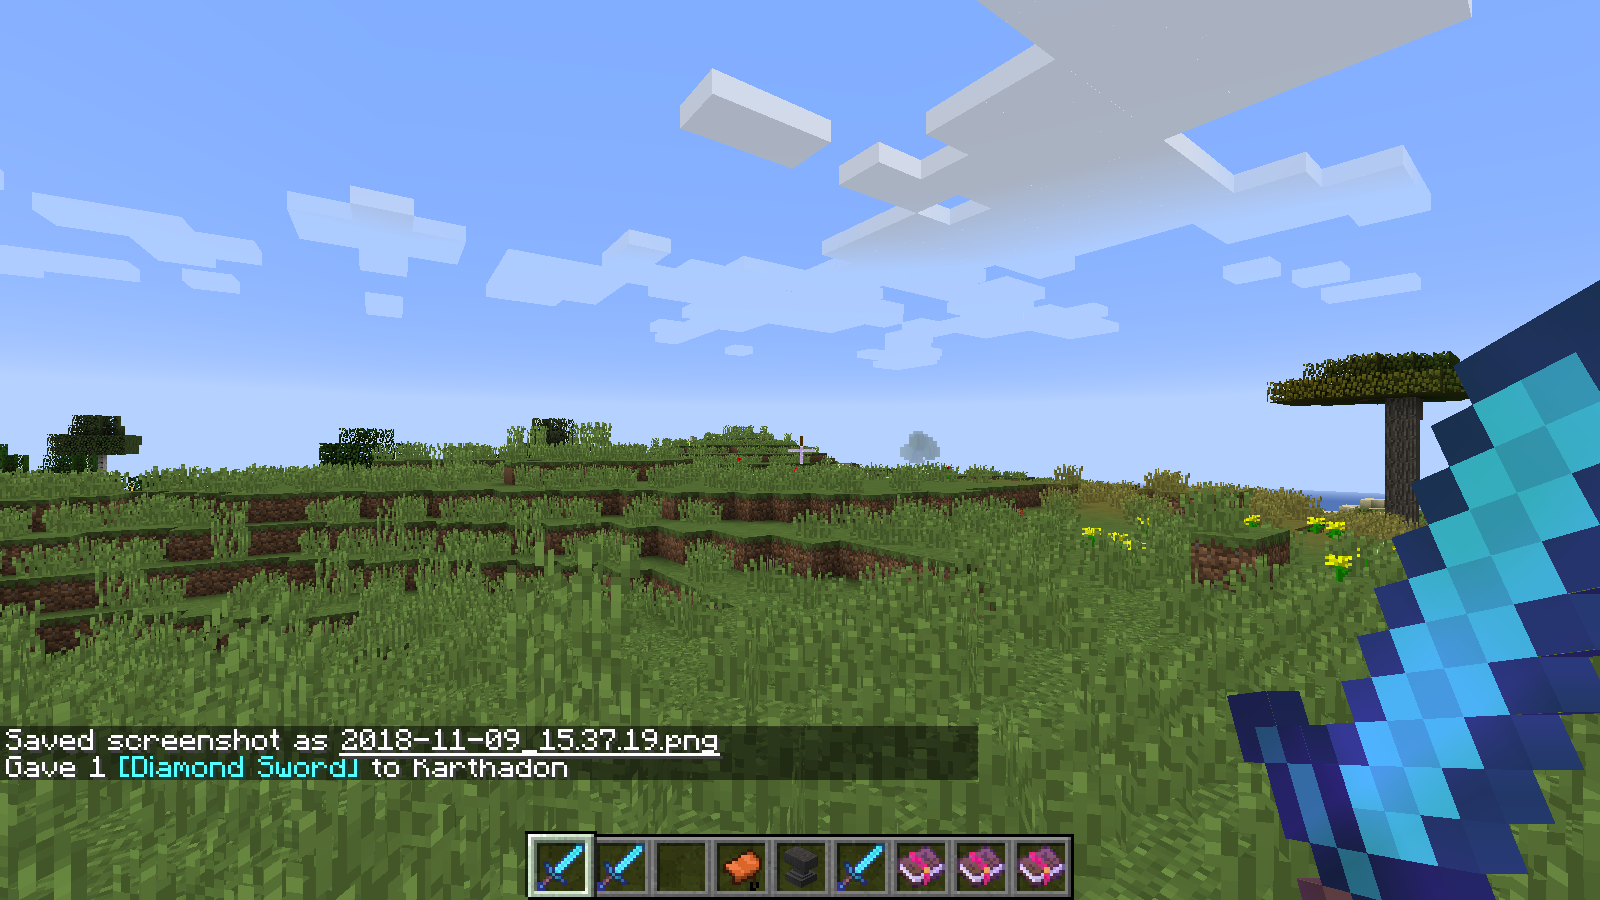 MC-139151] Can't spawn items with enchantment sweeping edge